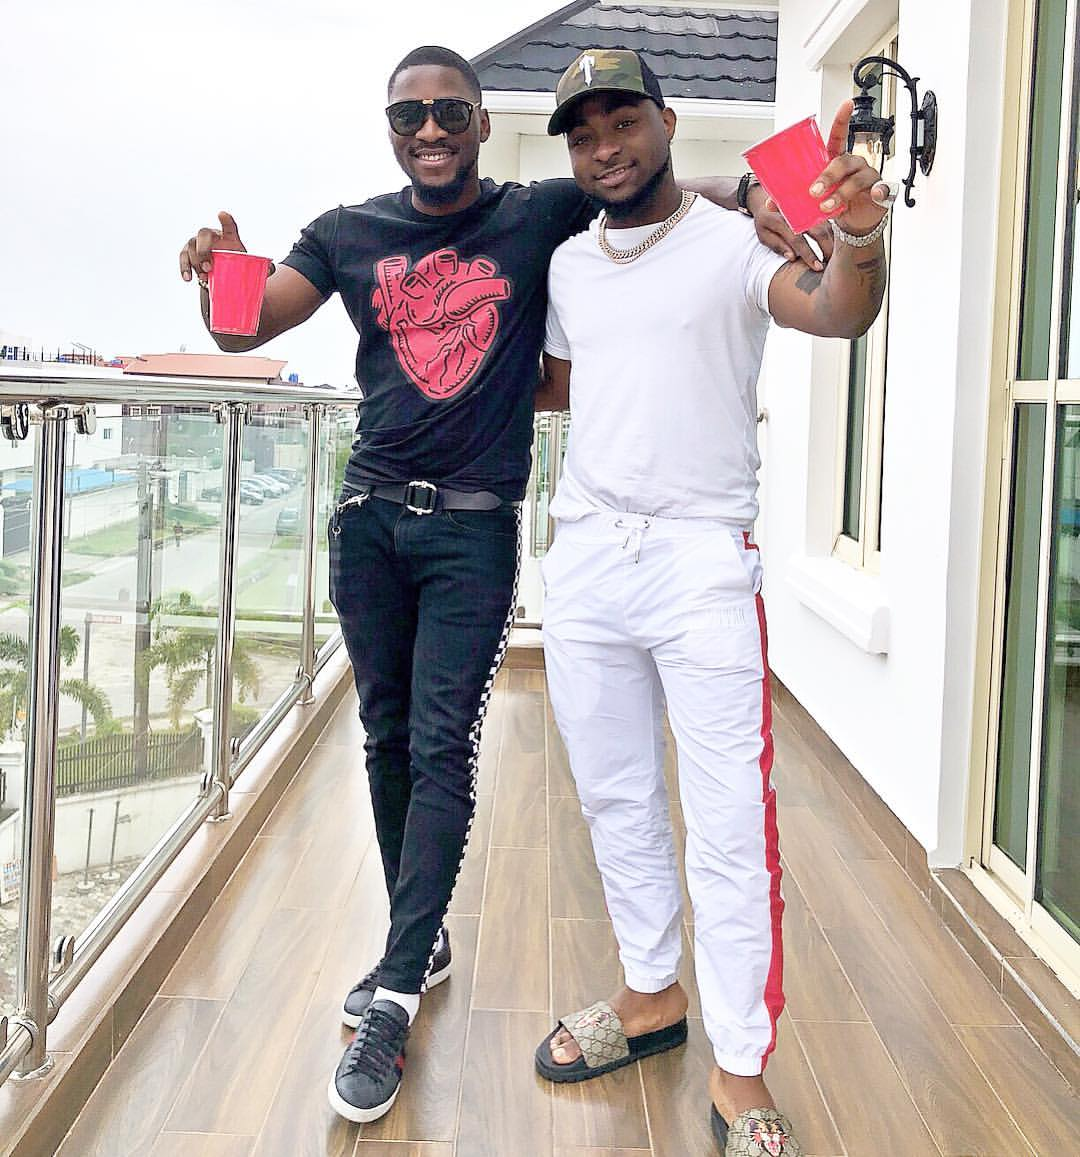 Davido and Tobi Bakre pictured chilling together